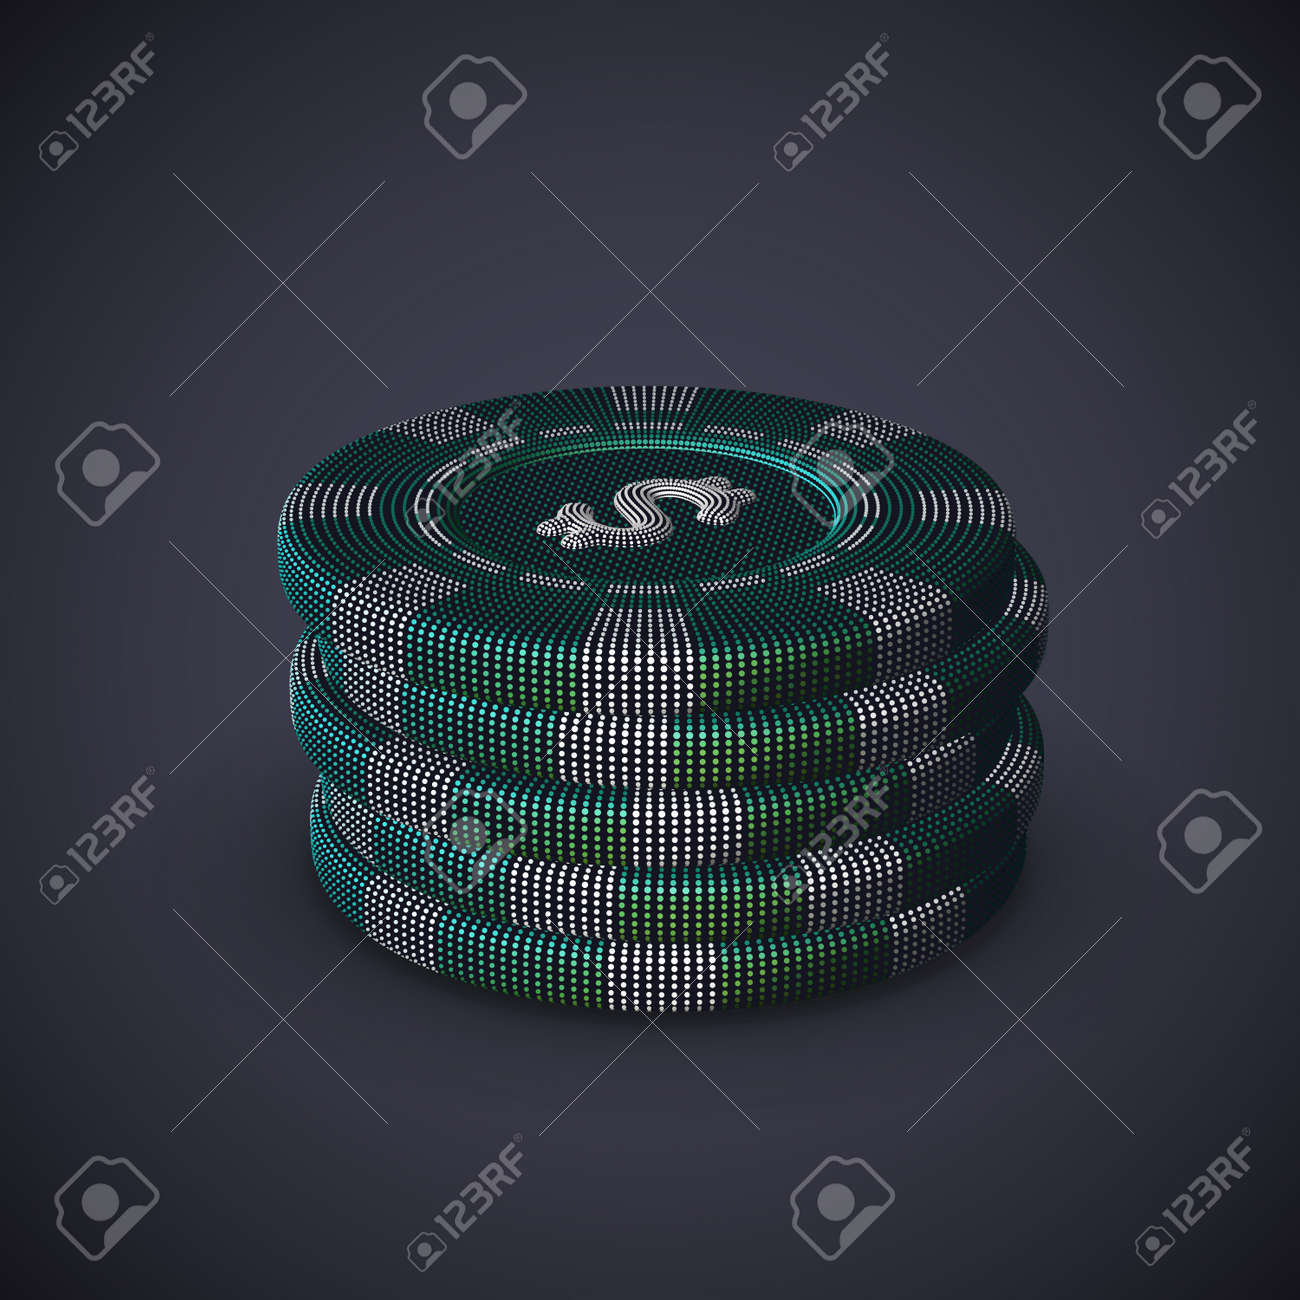 Digital 3D poker chips stack on gray background. Online gambling and virtual casino games. Stock exchange abstract concept: earning profit on currency exchange differences. vector illustration. - 161568187